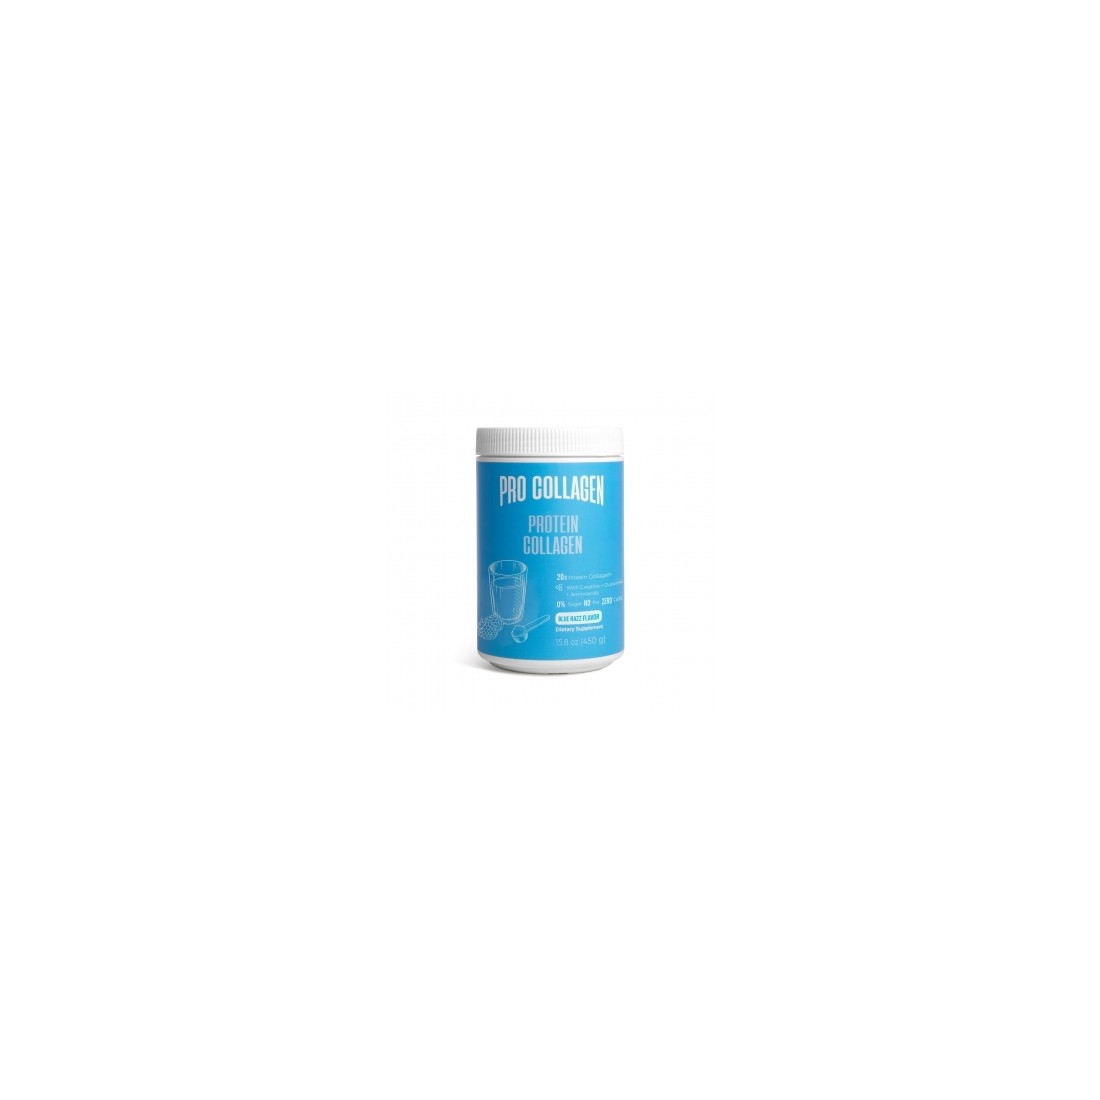 Protein Collagen 450g - Procollagen